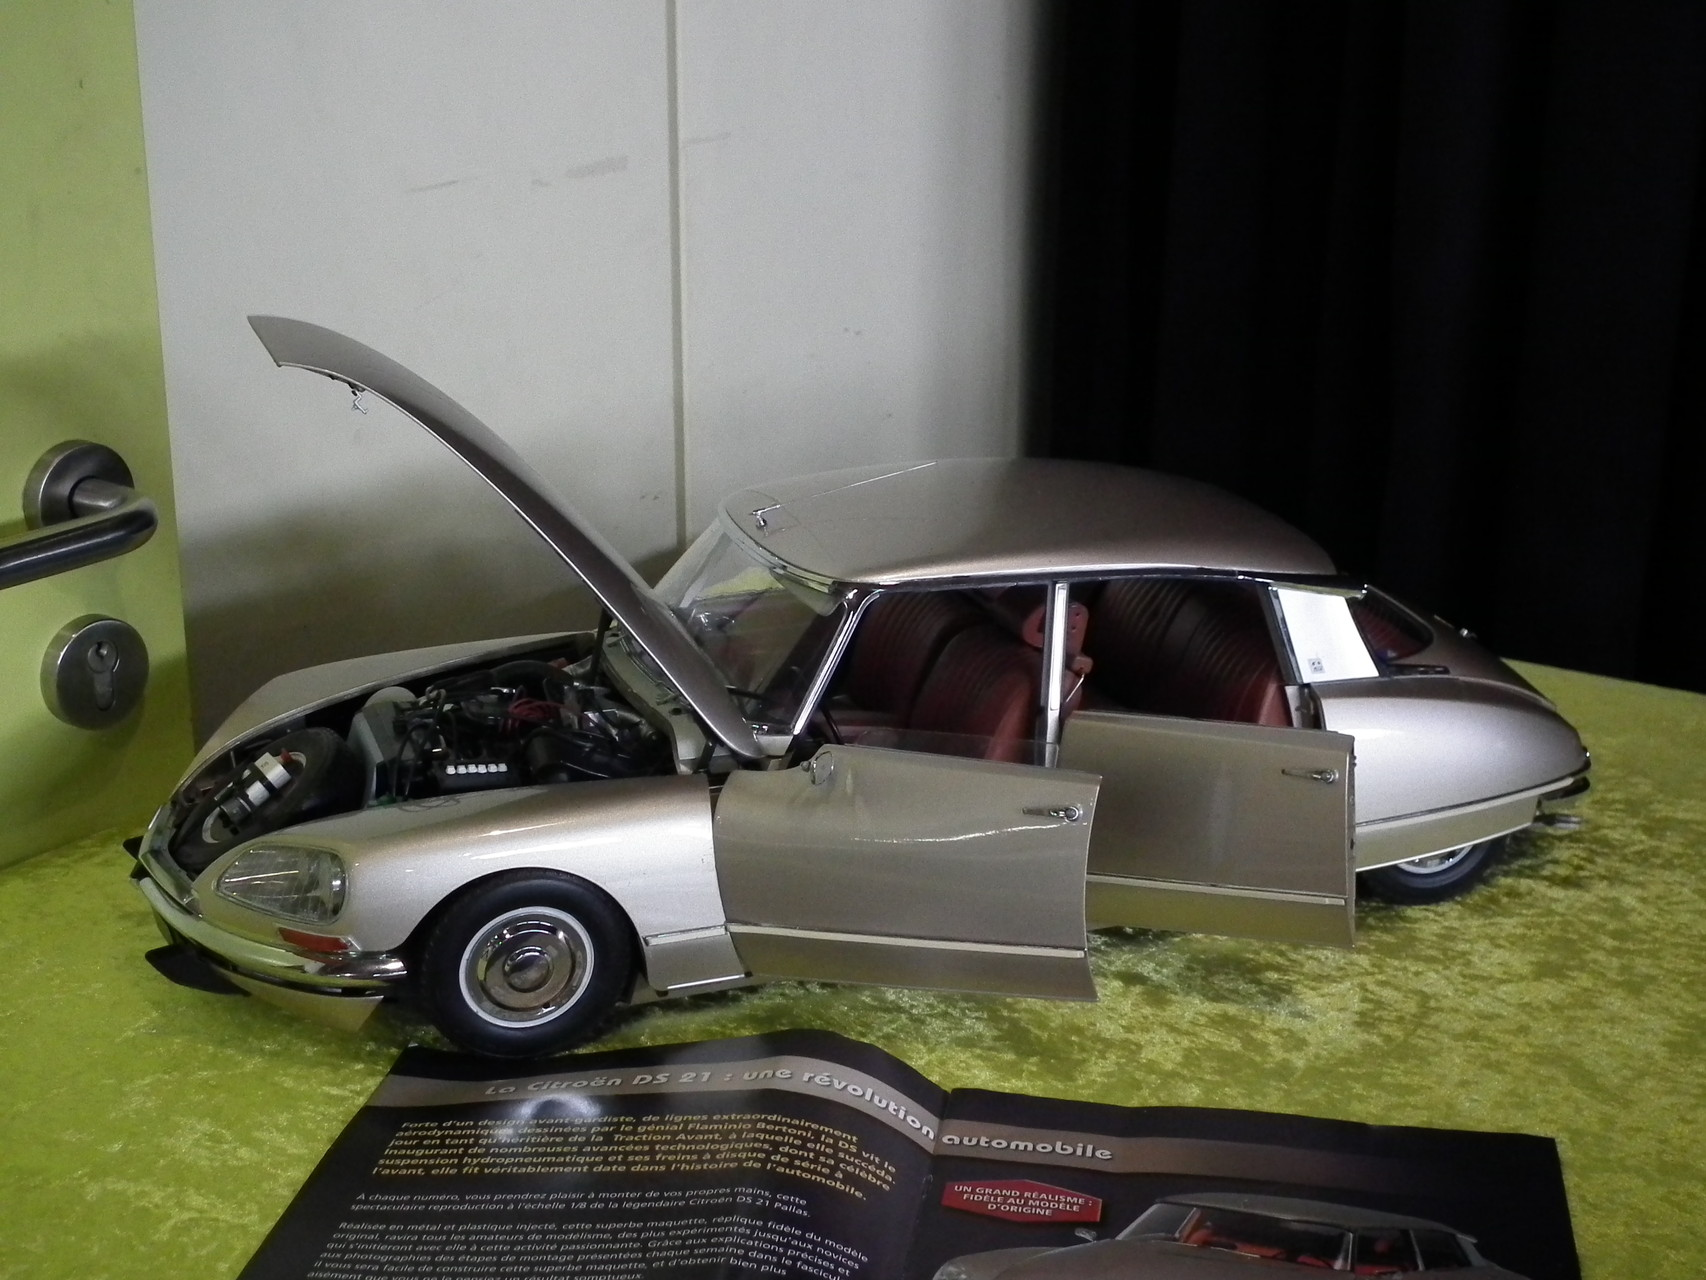 Metallmodell in 1/8